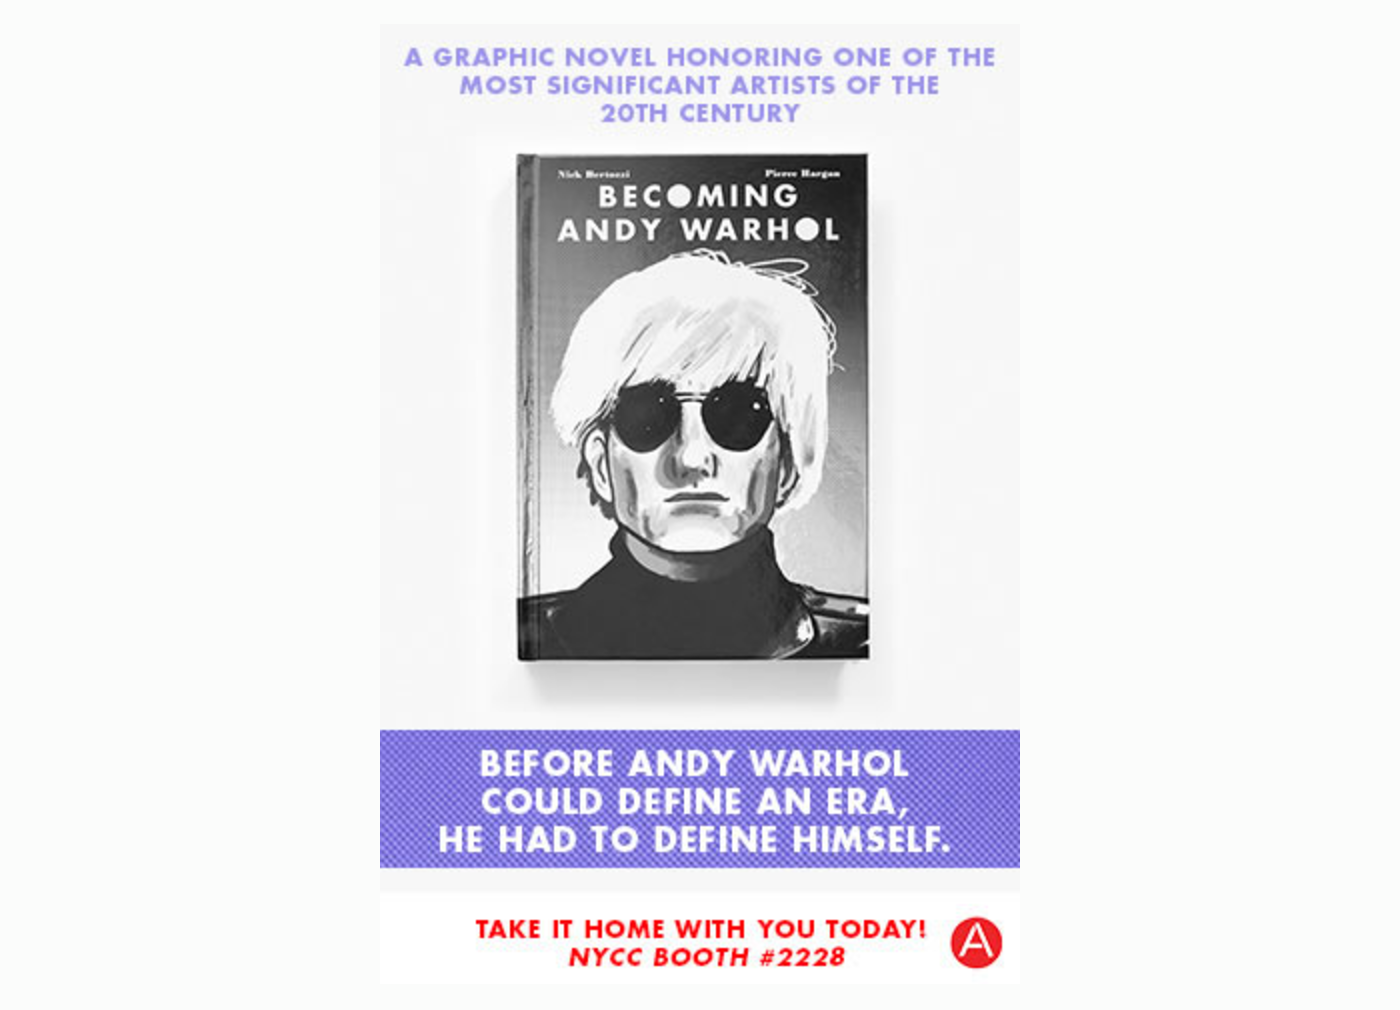 ABRAMS Becoming Andy Warhol Comic Con Proximity Targeting Ad Creative